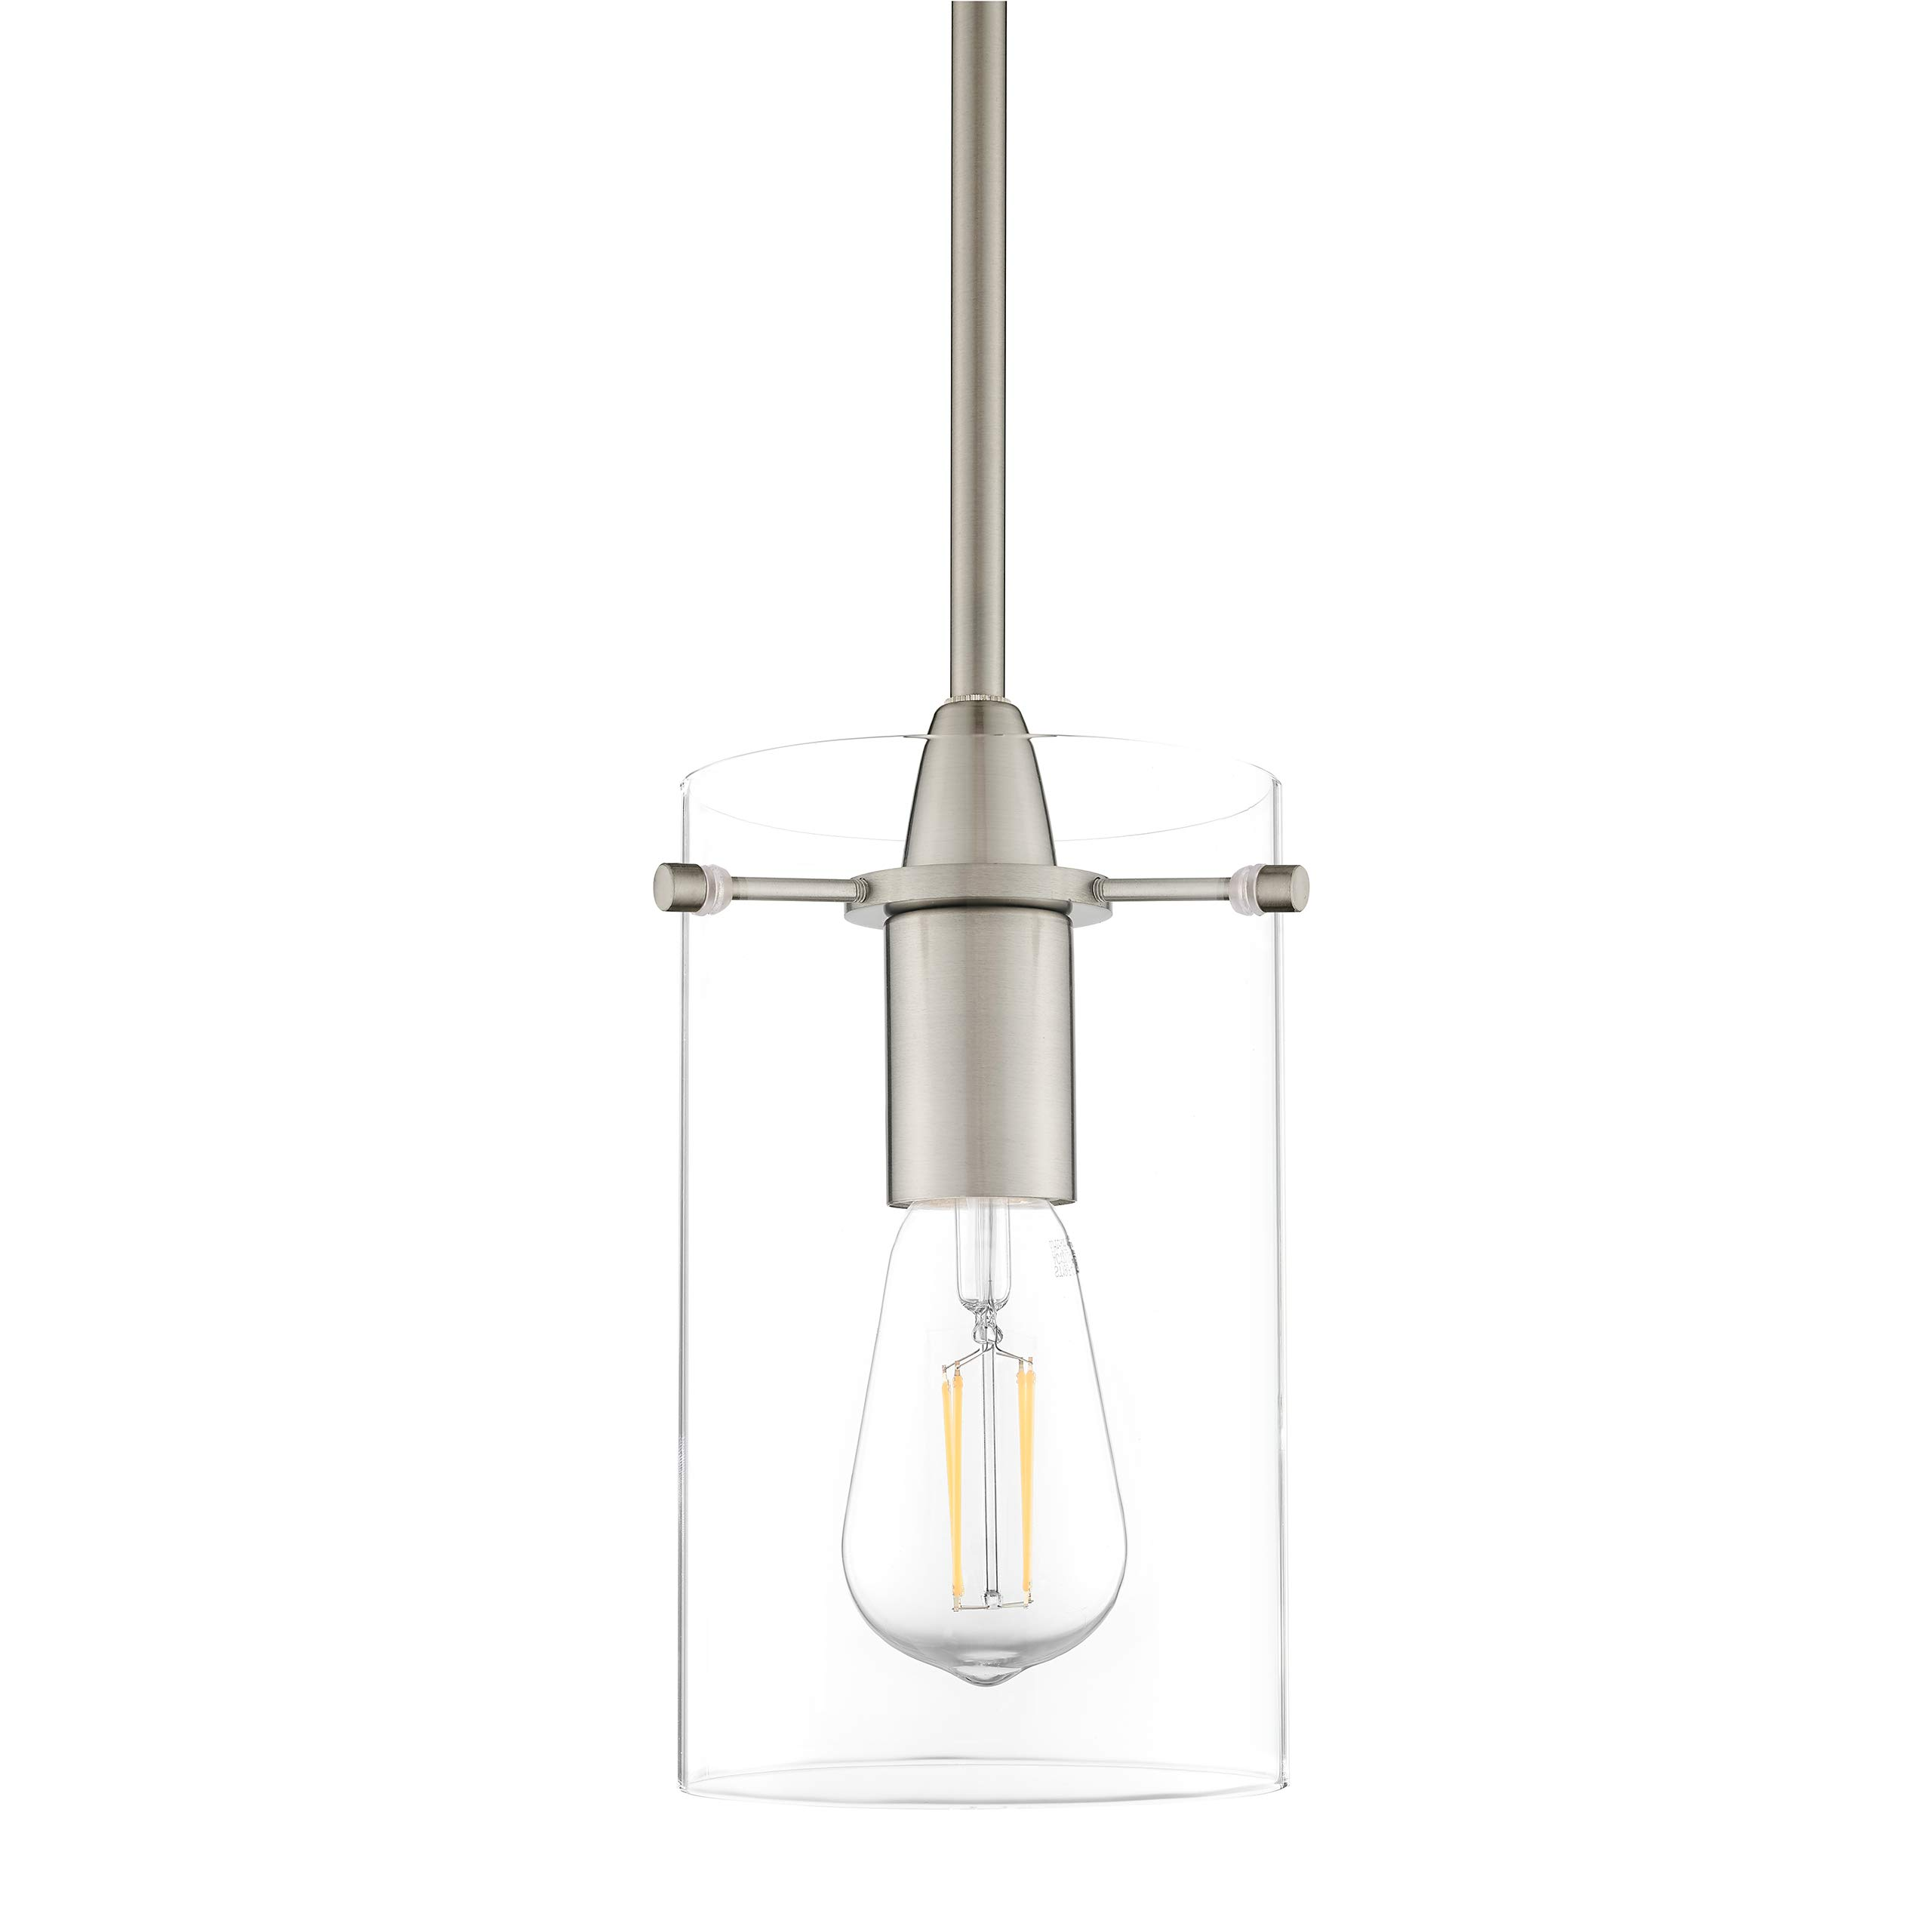 Effimero Medium Hanging Pendant Light | Brushed Nickel Kitchen Island Light, Clear Glass Shade LL-P313-BN